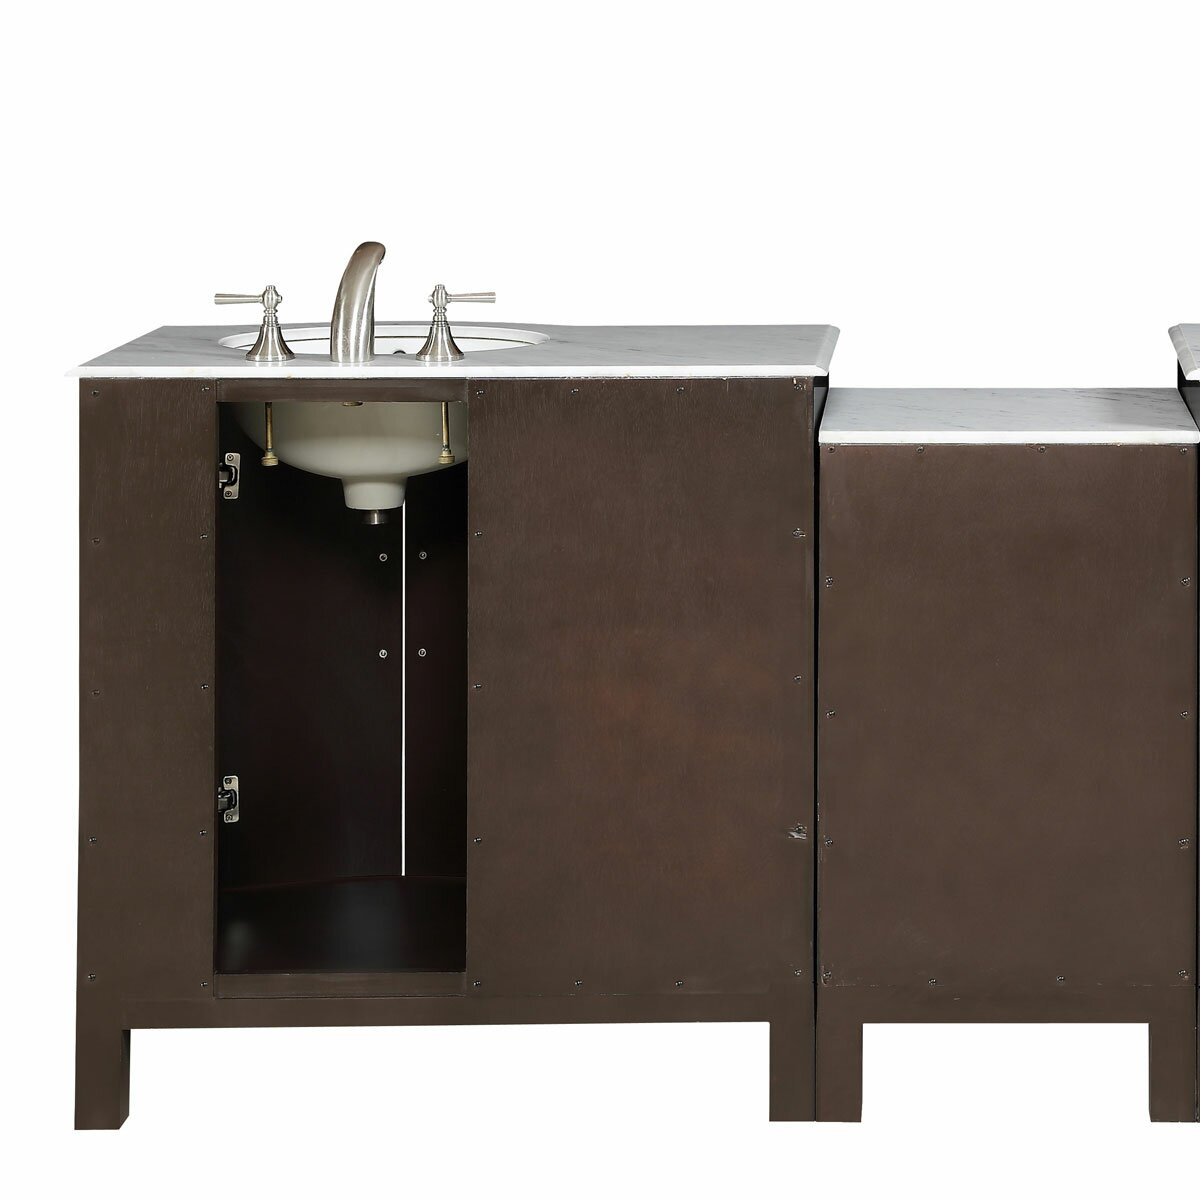 Silkroad exclusive 53 5 single right sink bathroom vanity for Bath and vanity set